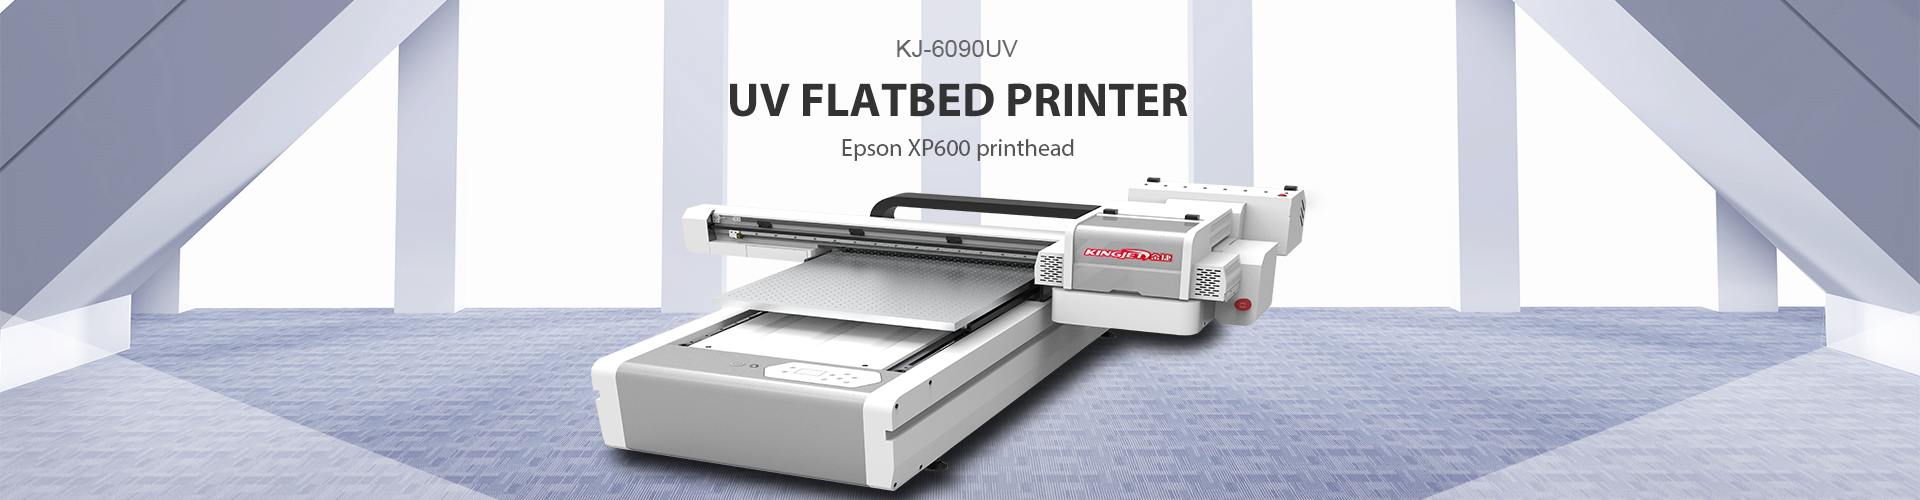 KINGJET KJ-6090UV Epson XP600 UV Flatbed Printer